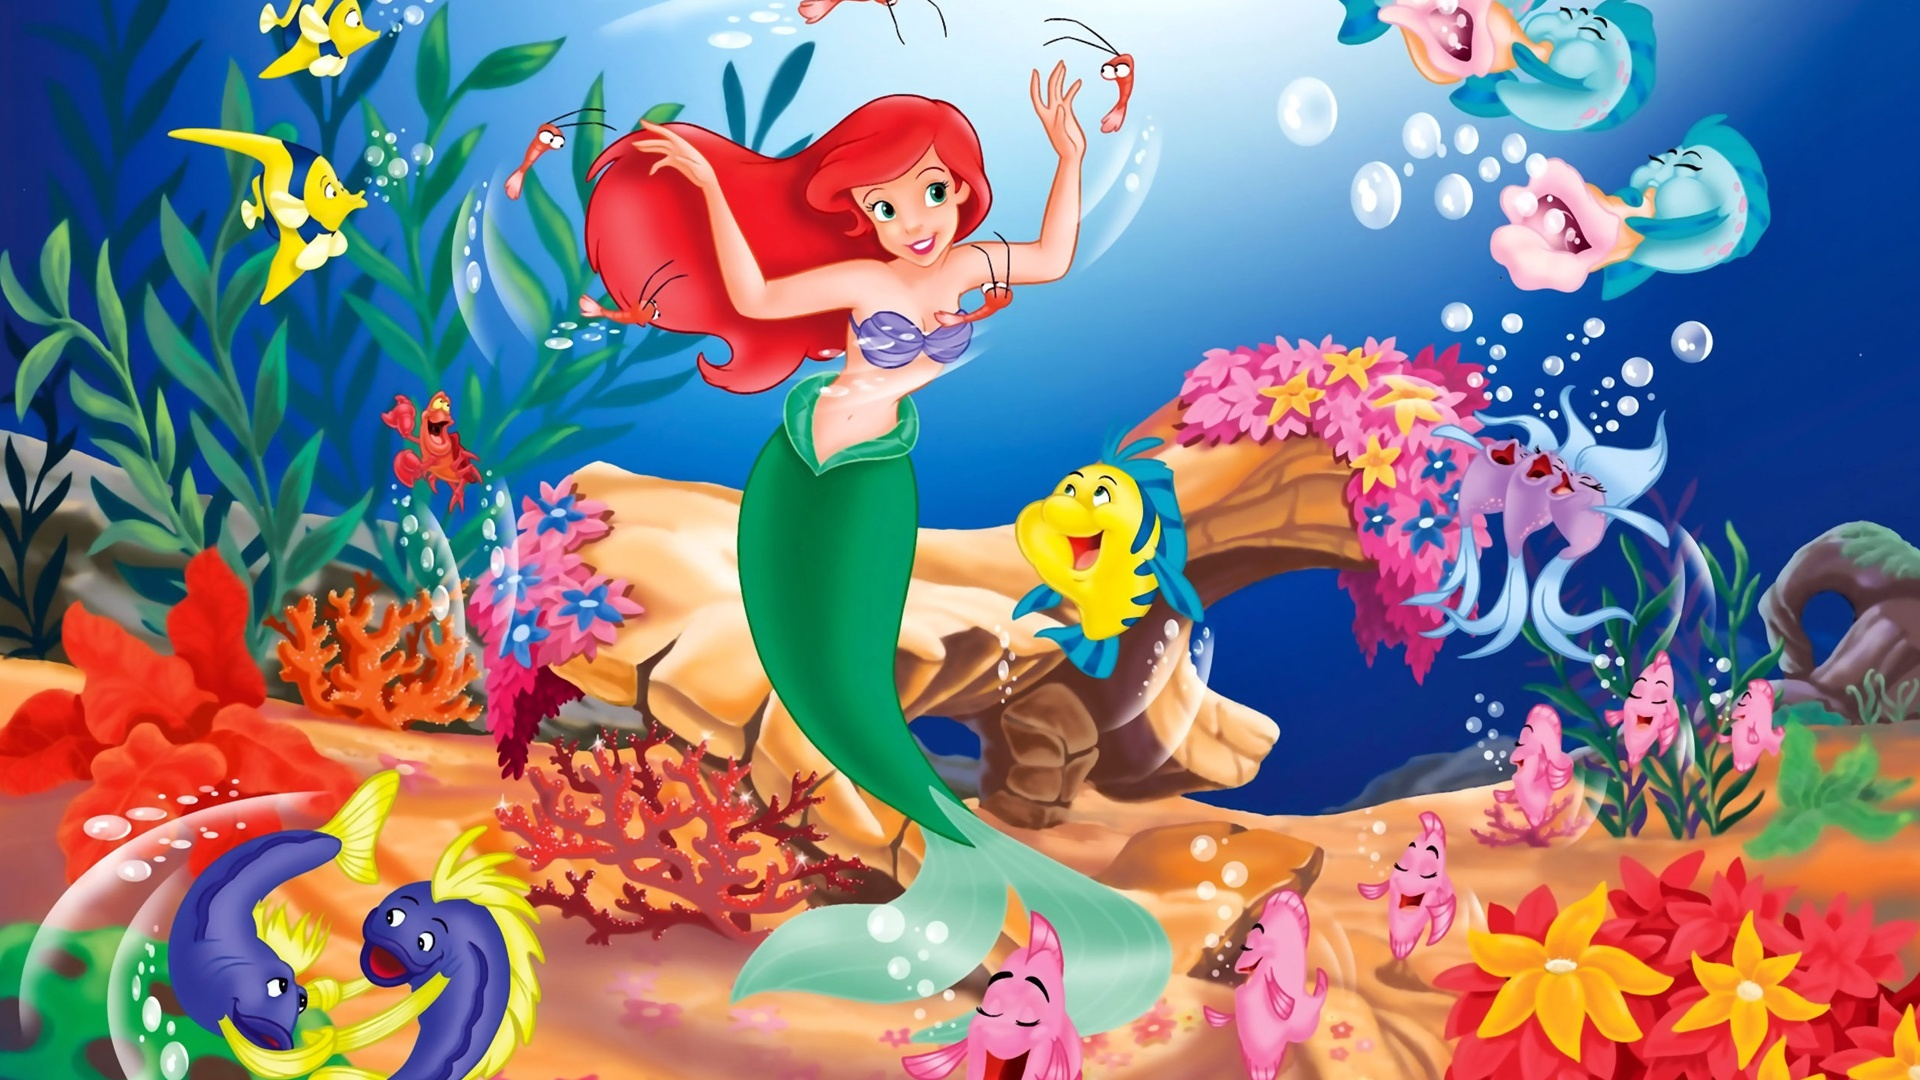 Disney The Little Mermaid Wallpapers HD Wallpapers 1920x1080